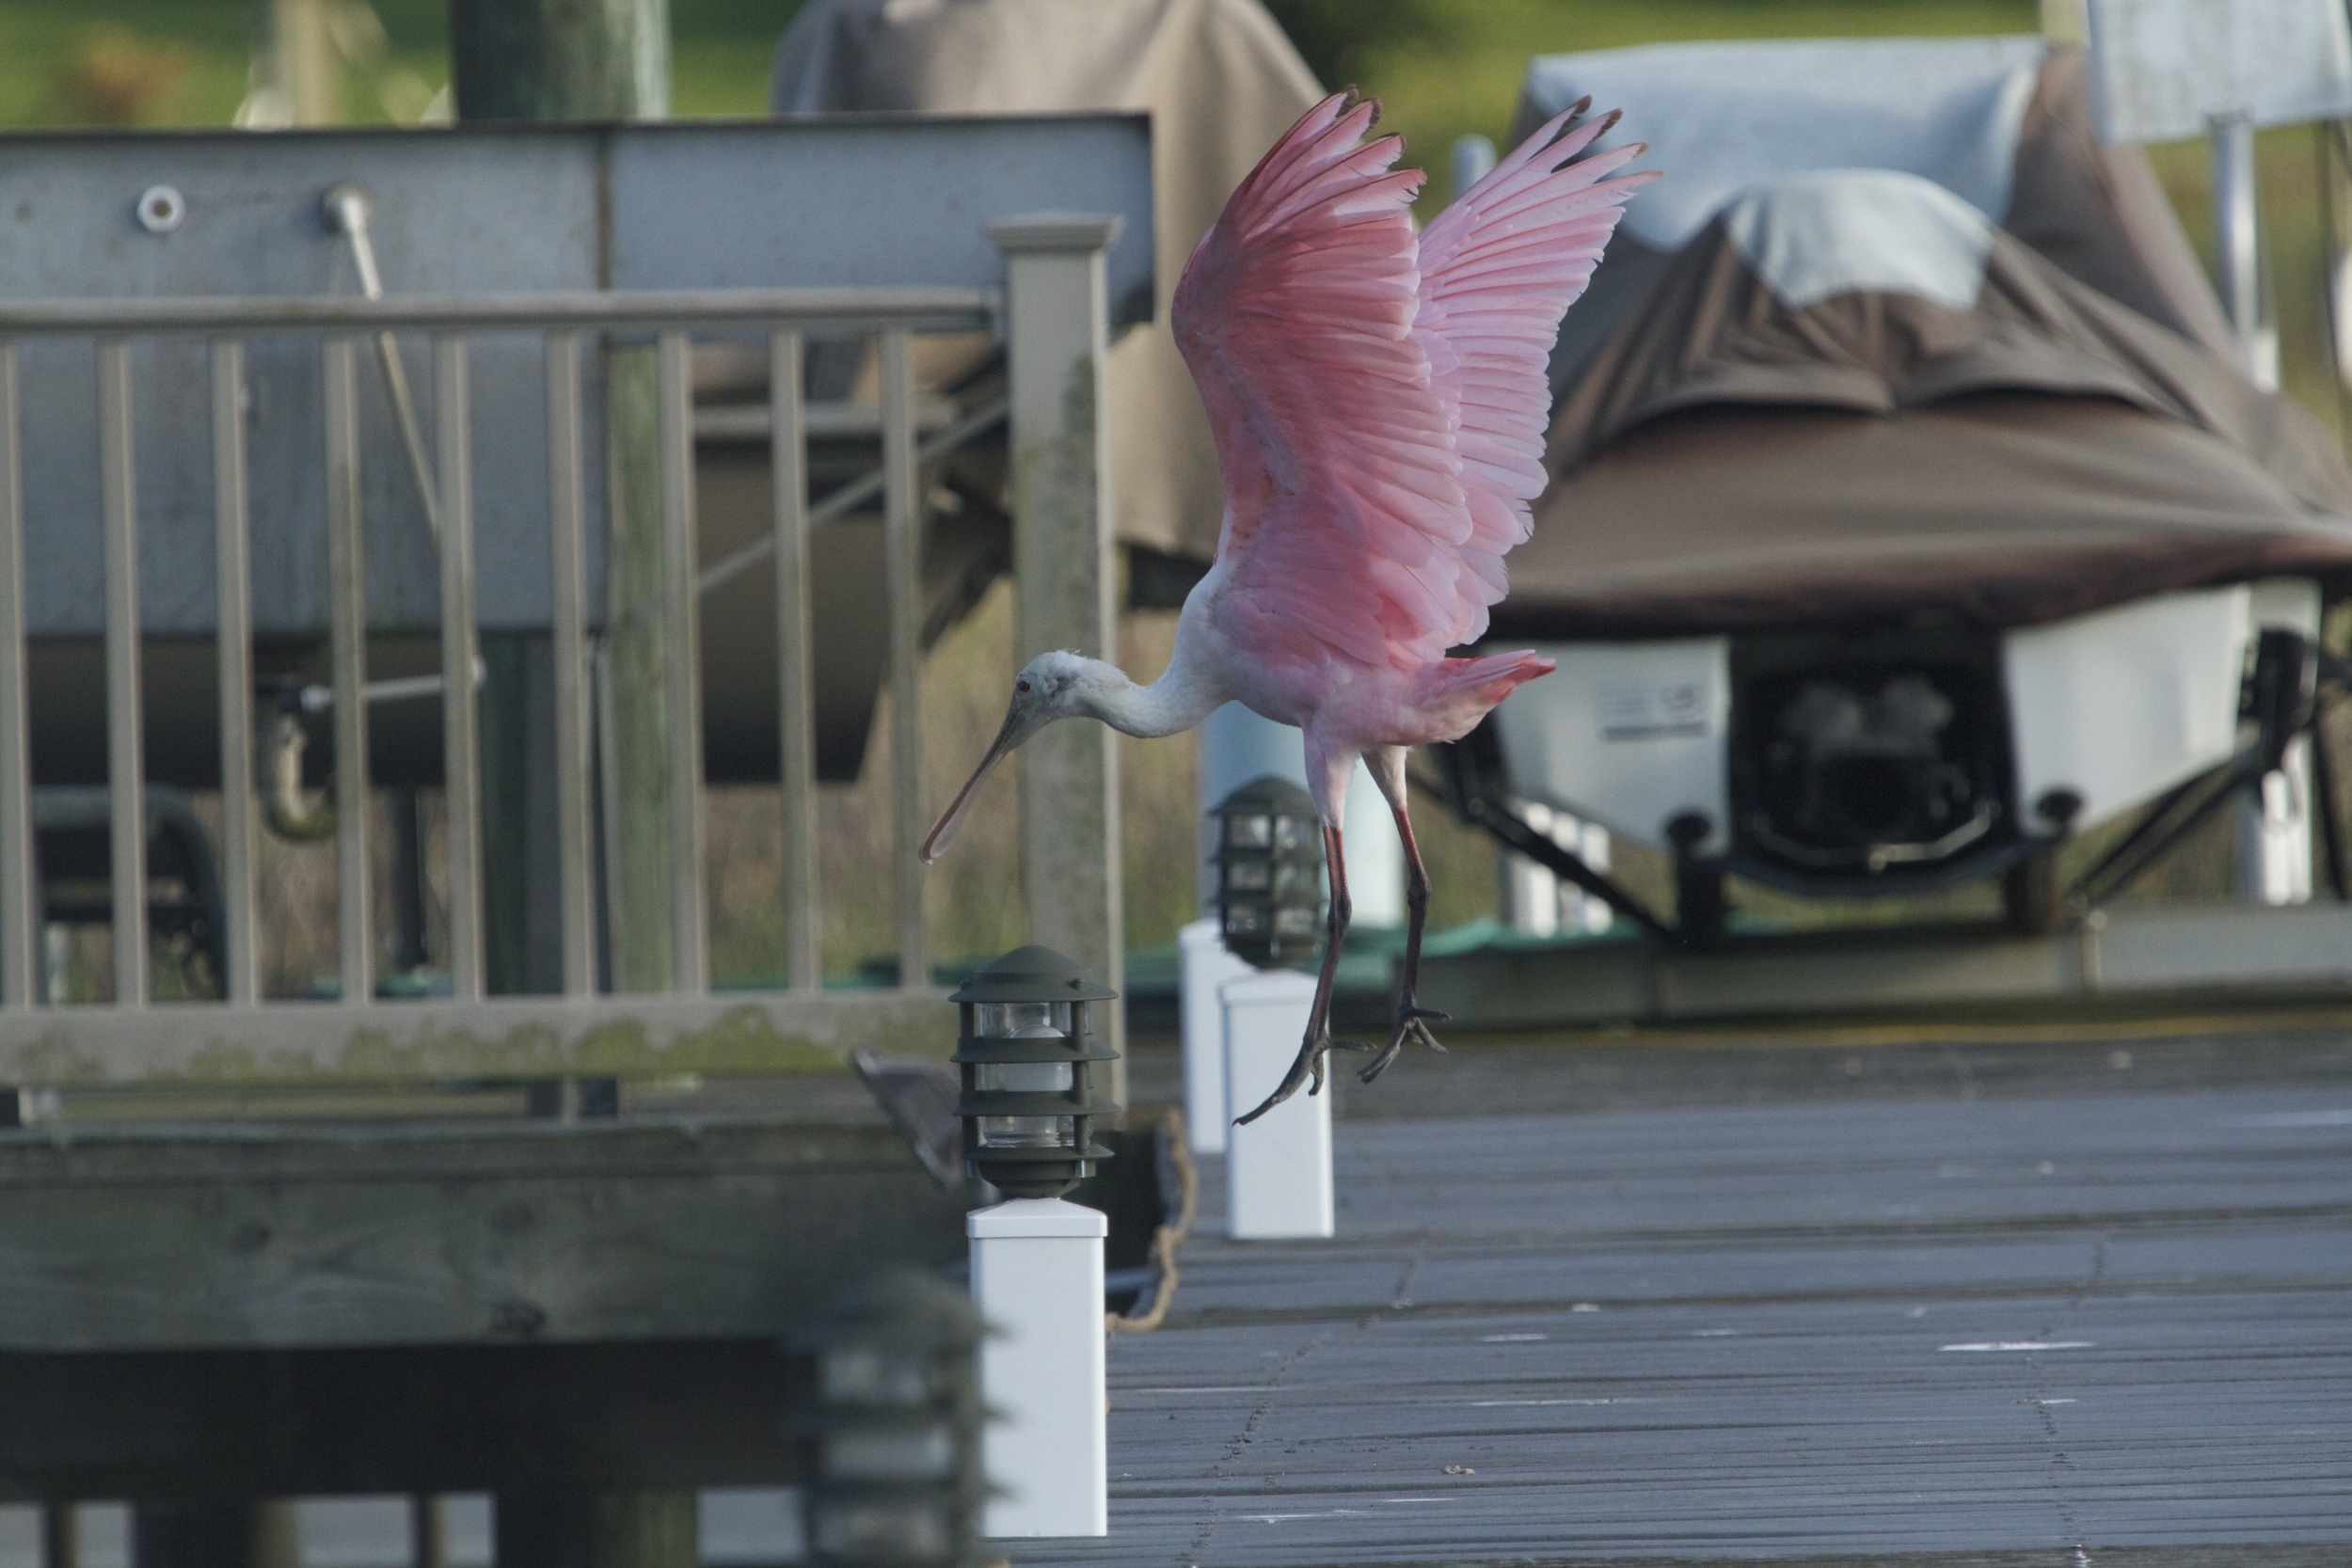 One by one four spoonbills hop up on the dock ahead of me to cross over to the other stream to feed.